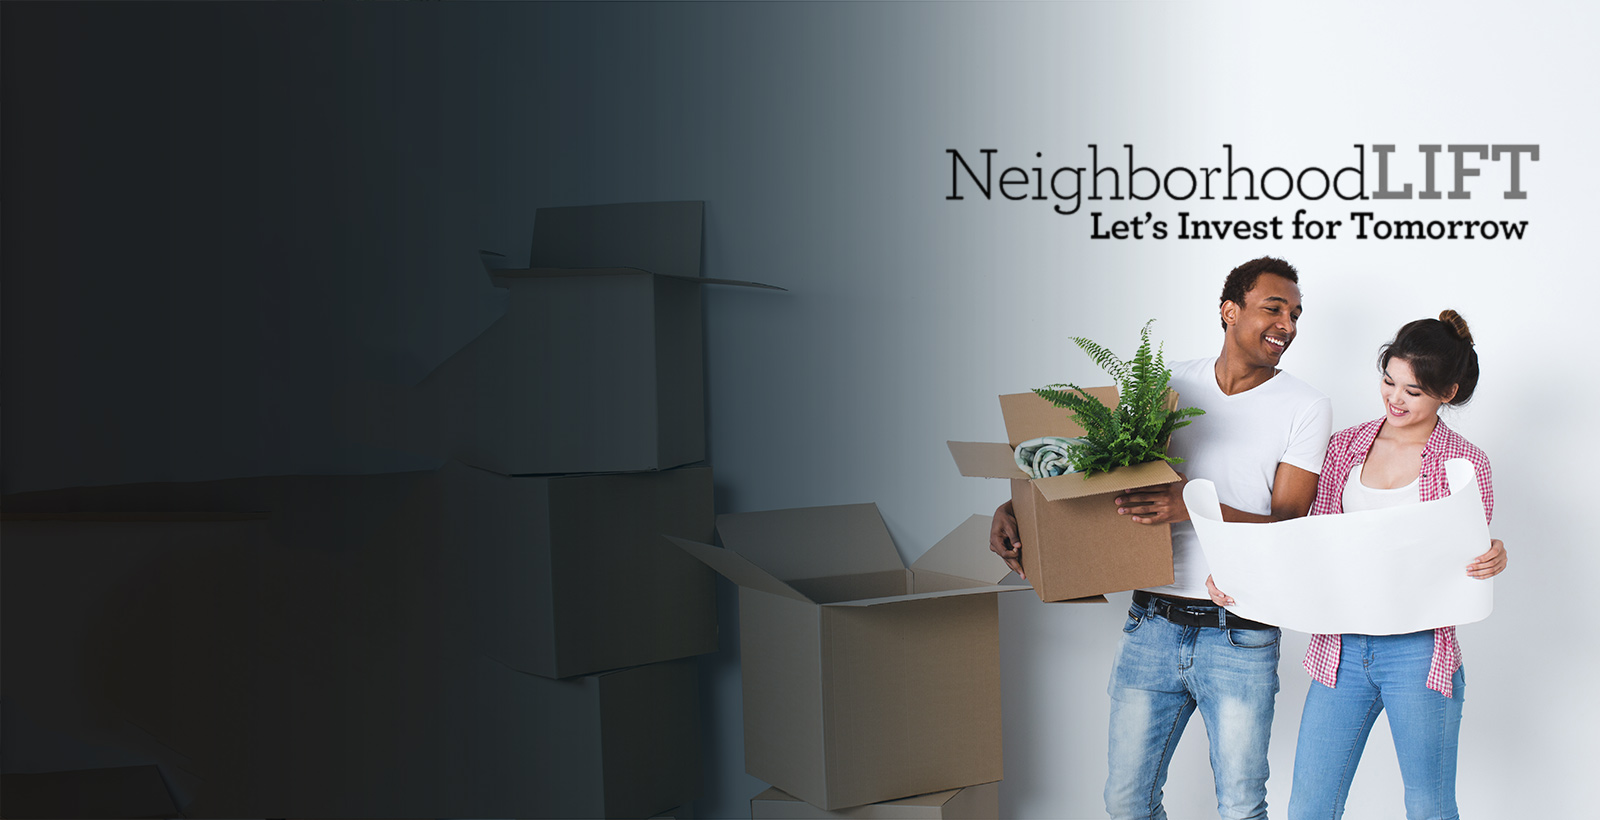 NeighborhoodLIFT Program